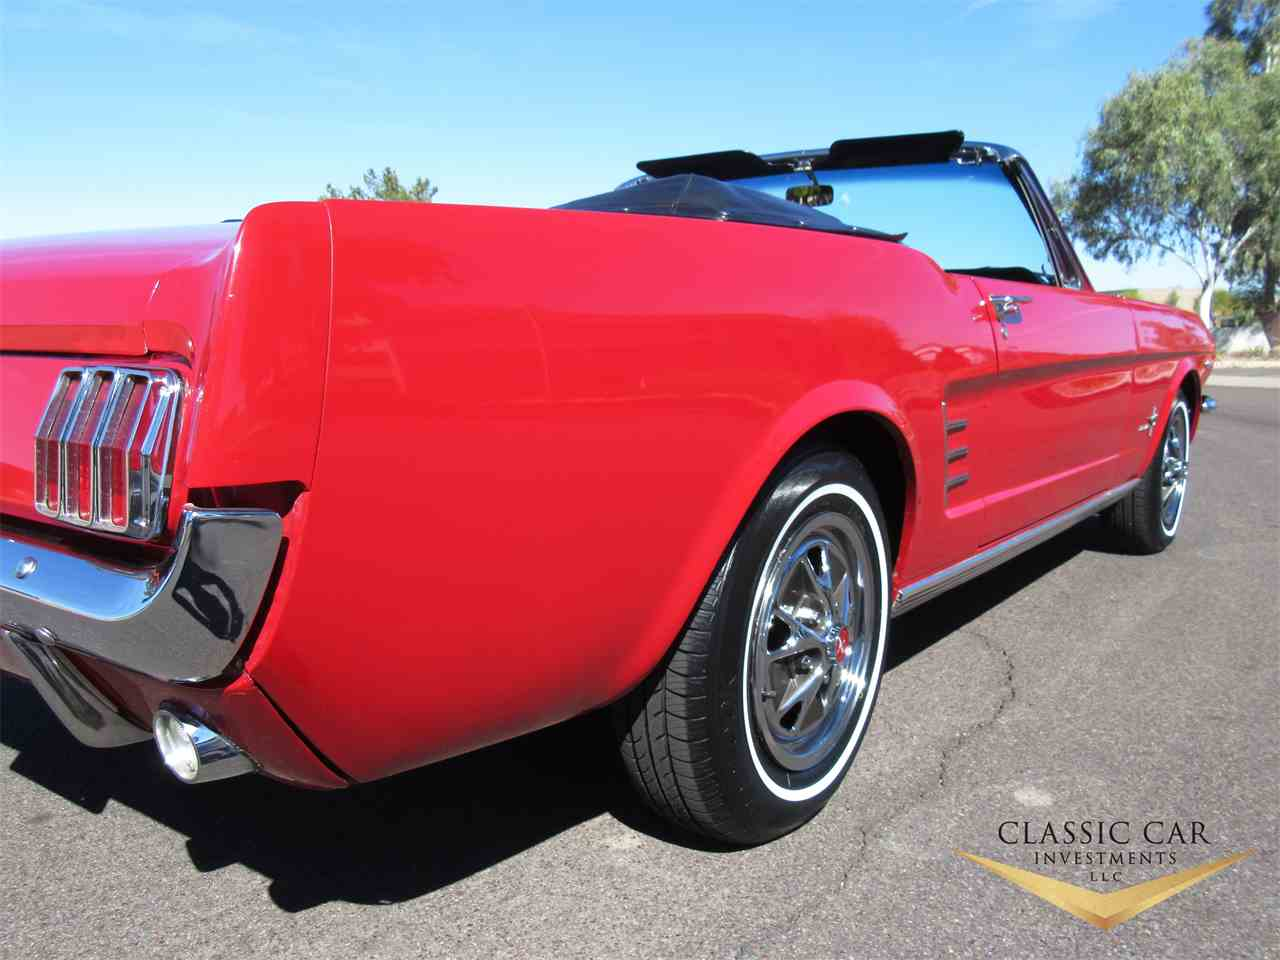 Large Picture of 1966 Ford Mustang located in scottsdale Arizona - $29,500.00 - MTOM